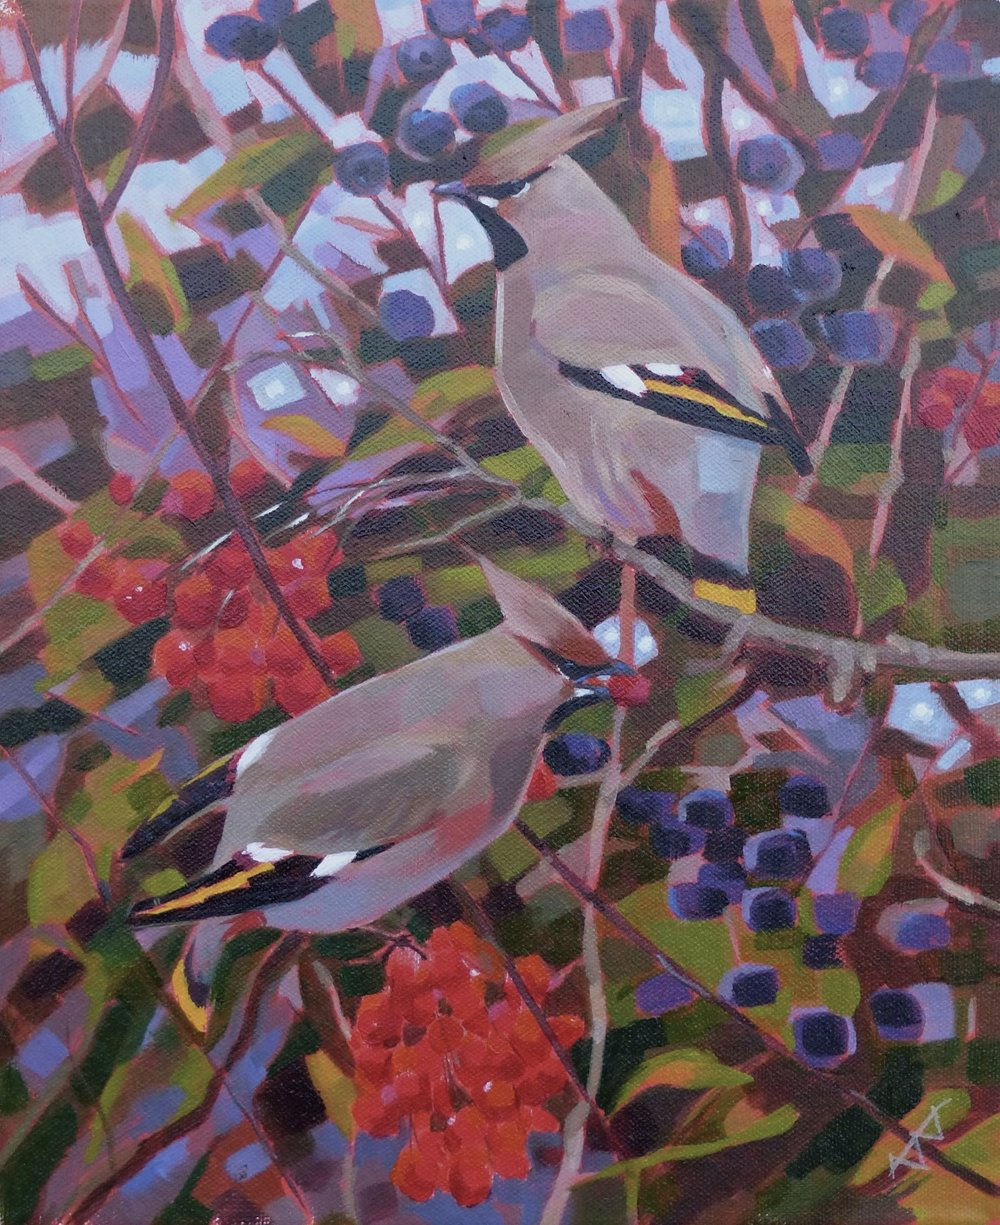 Waxwings with Guelder Rose and Blackthorn acrylic on canvas SOLD